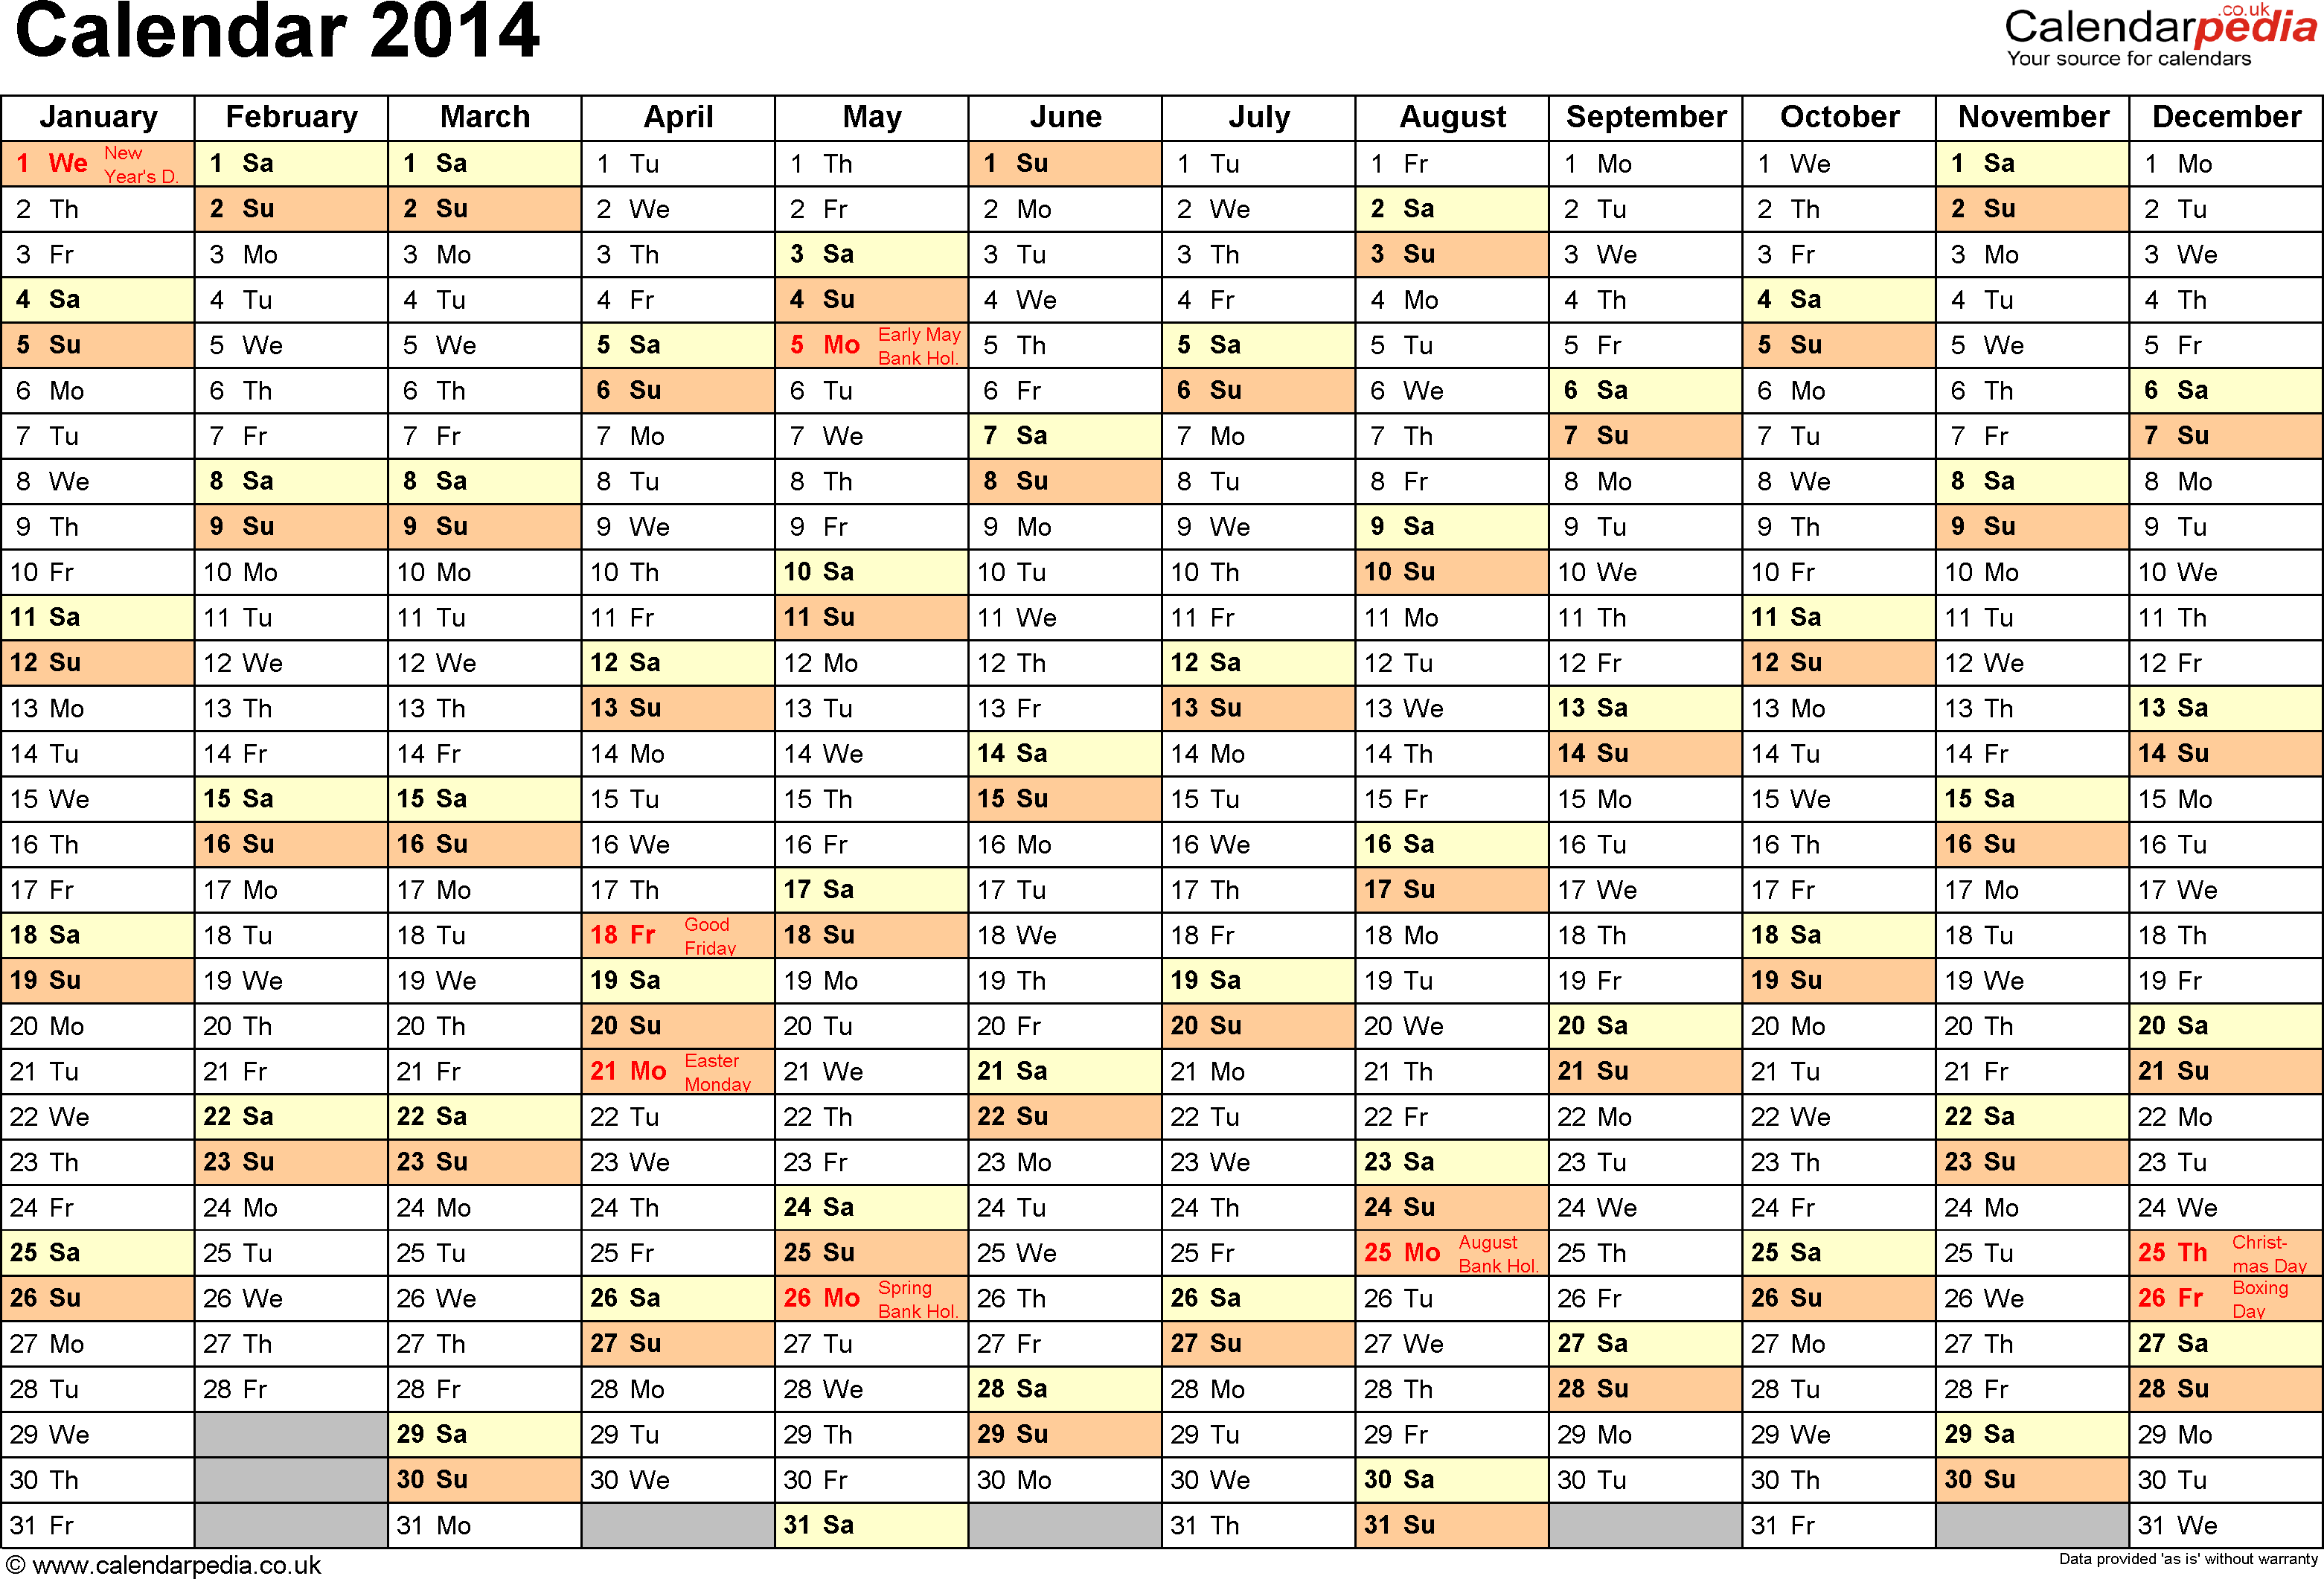 Calendar Date Selection In Excel How To Make A Calendar Template In Excel Makeuseof Calendar 2014 Uk With Bank Holidays And Excelpdfword Templates